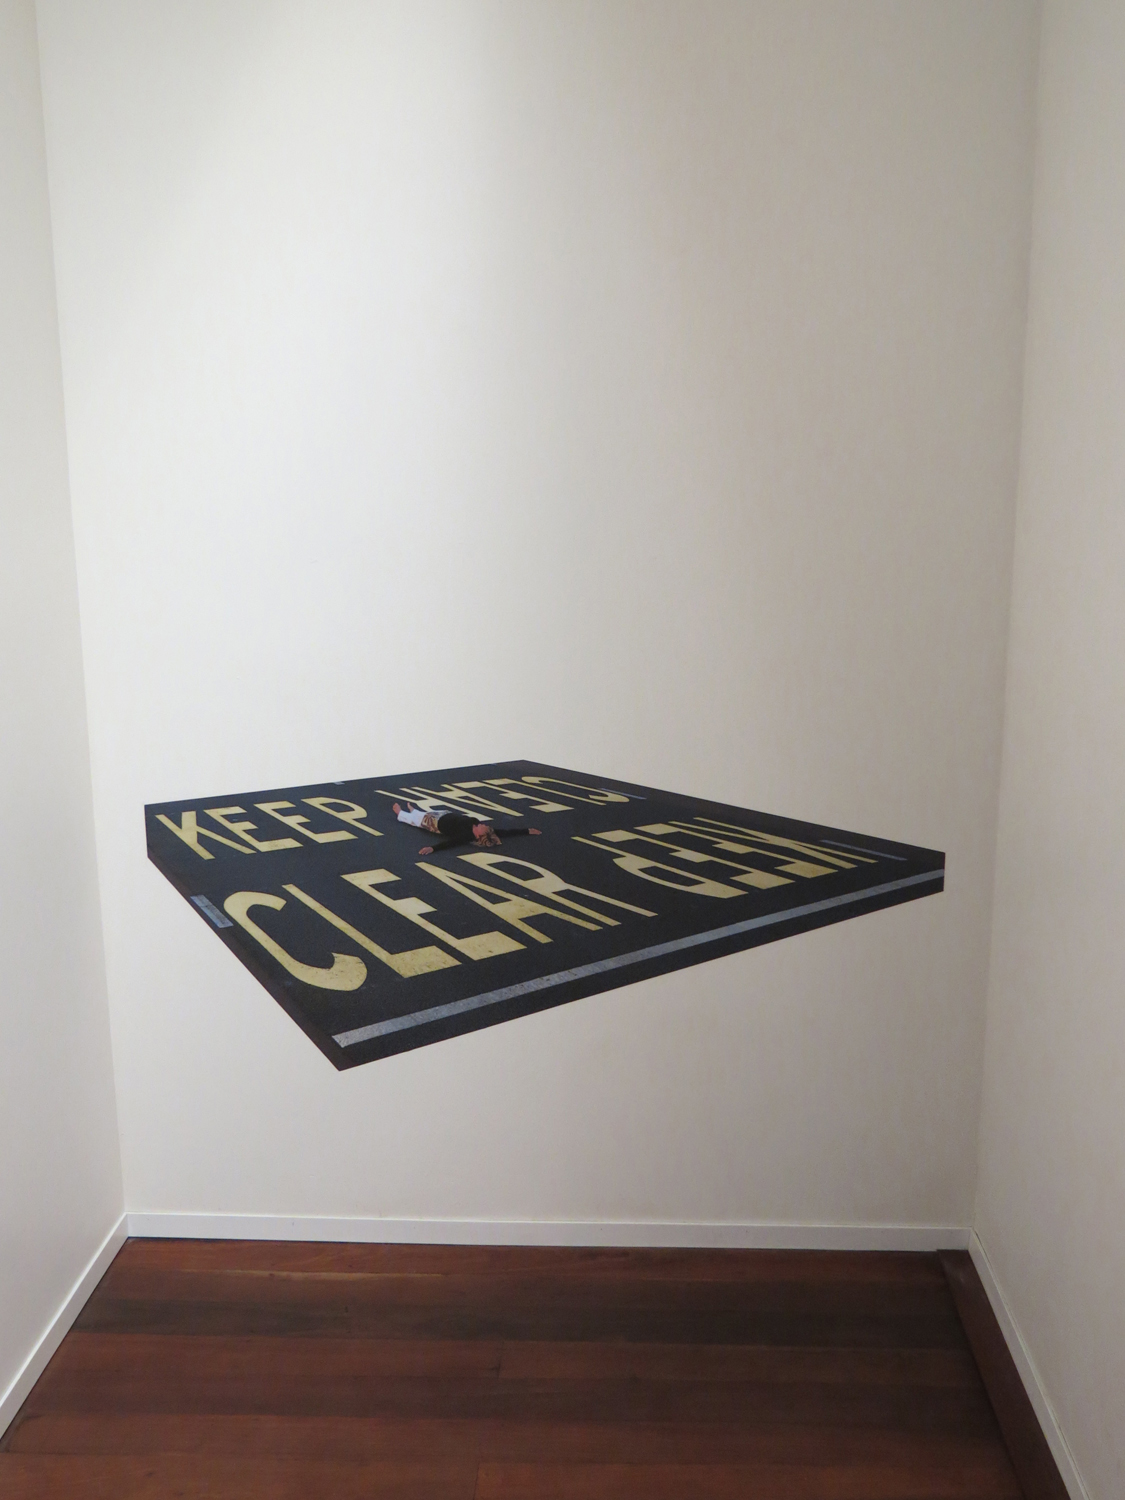 18 Gera Woltjer, Zonder Title # FPh4  (Installation)2014, inkjet print on Phototex (adhesive polyester fabric), edition of 10, 65 x 150 cm, $2,400